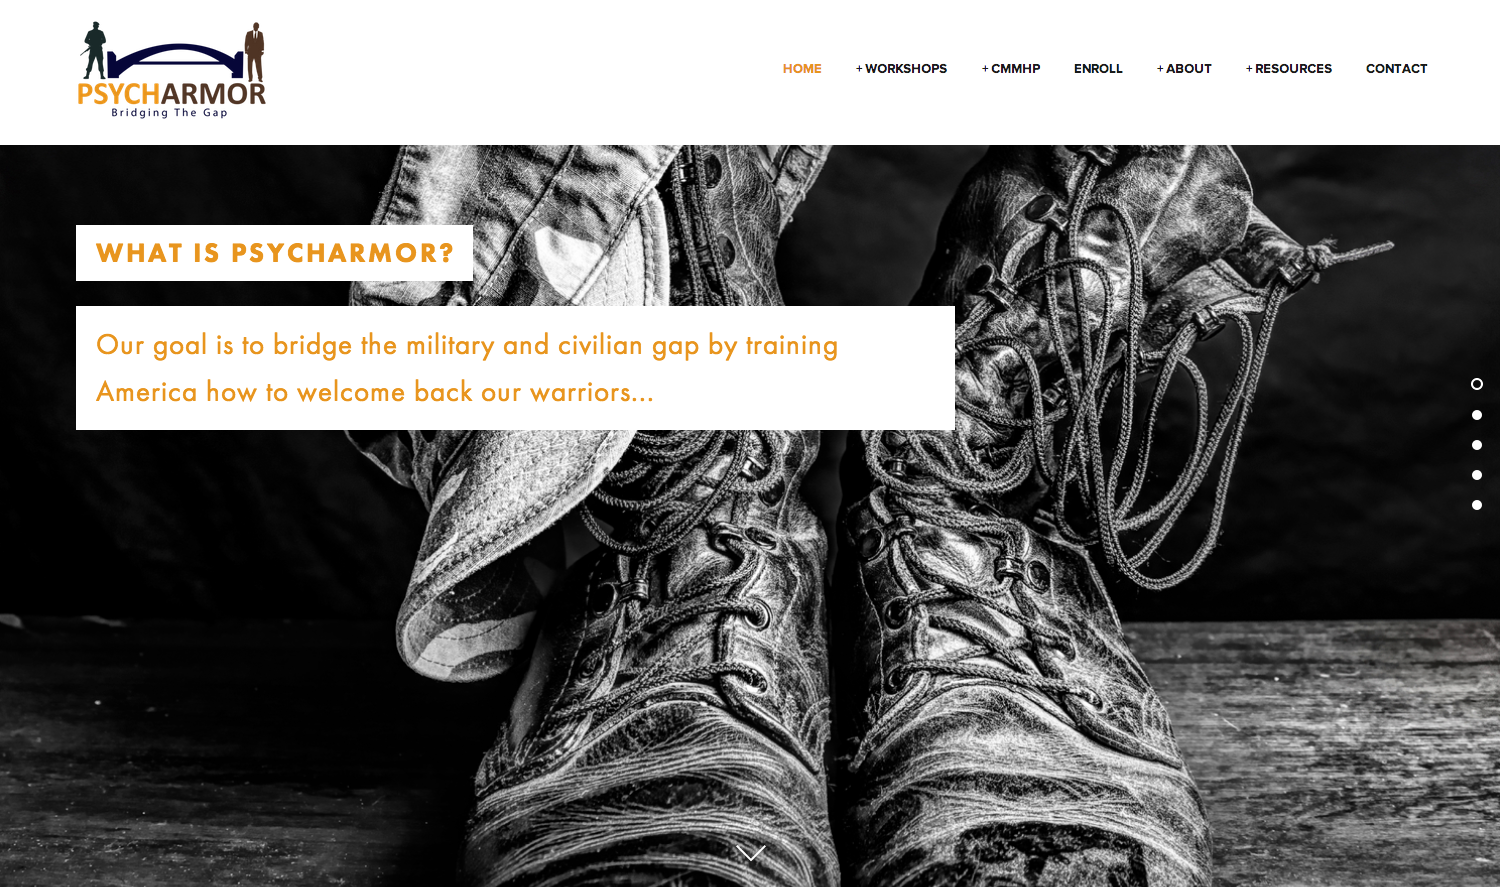 squarespace-6-marquee-template-example.png